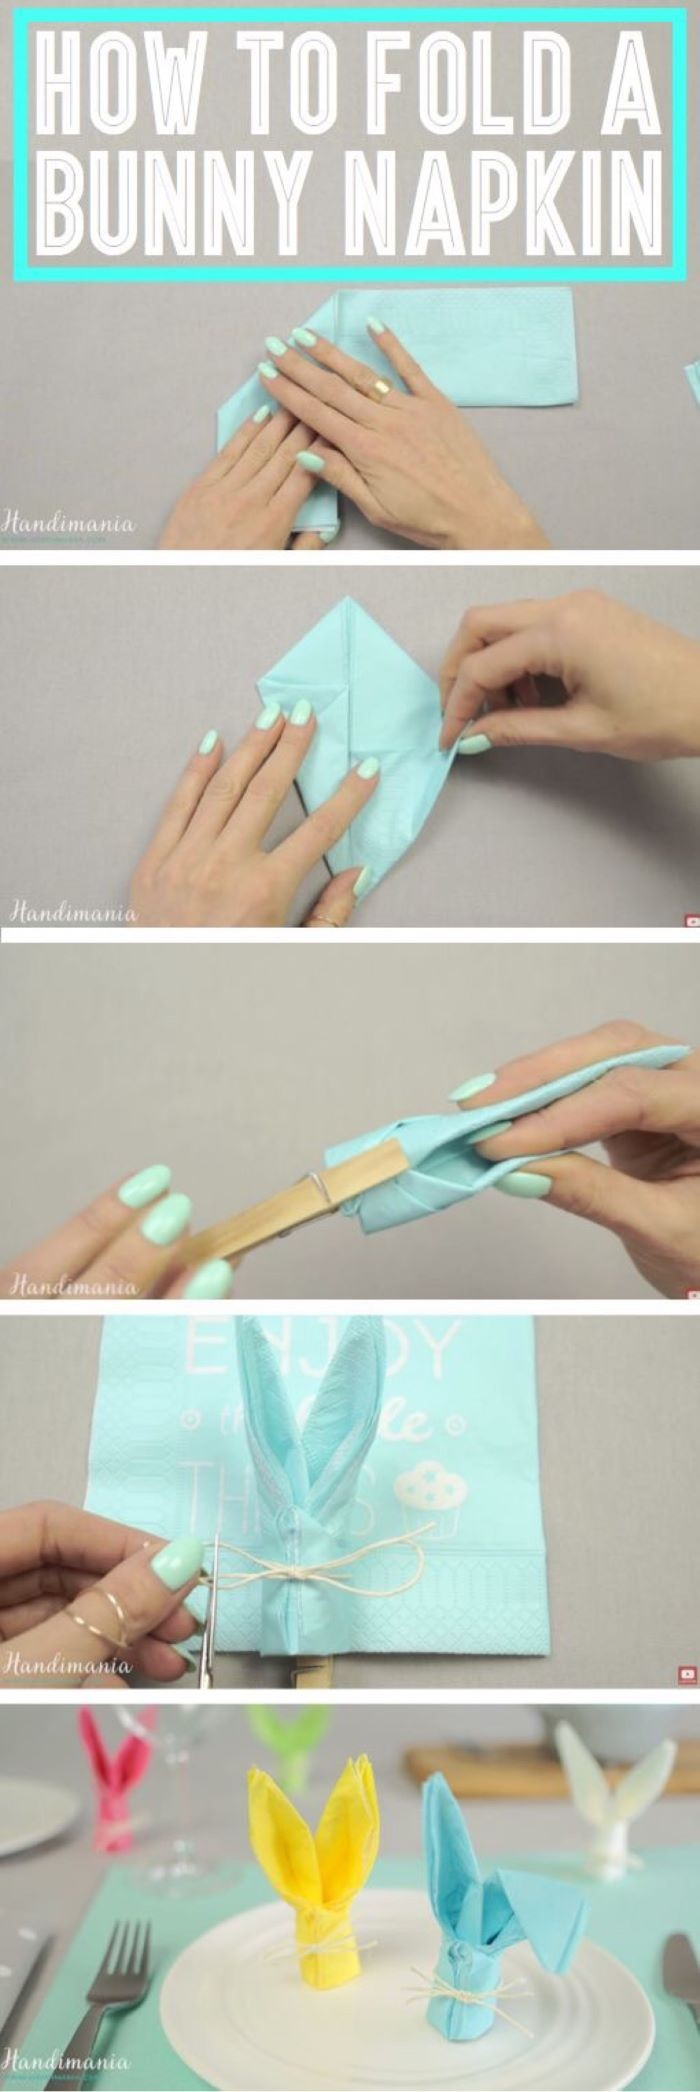 how to fold a bunny napkin, easter table decorations, step by step diy tutorial, blue napkin